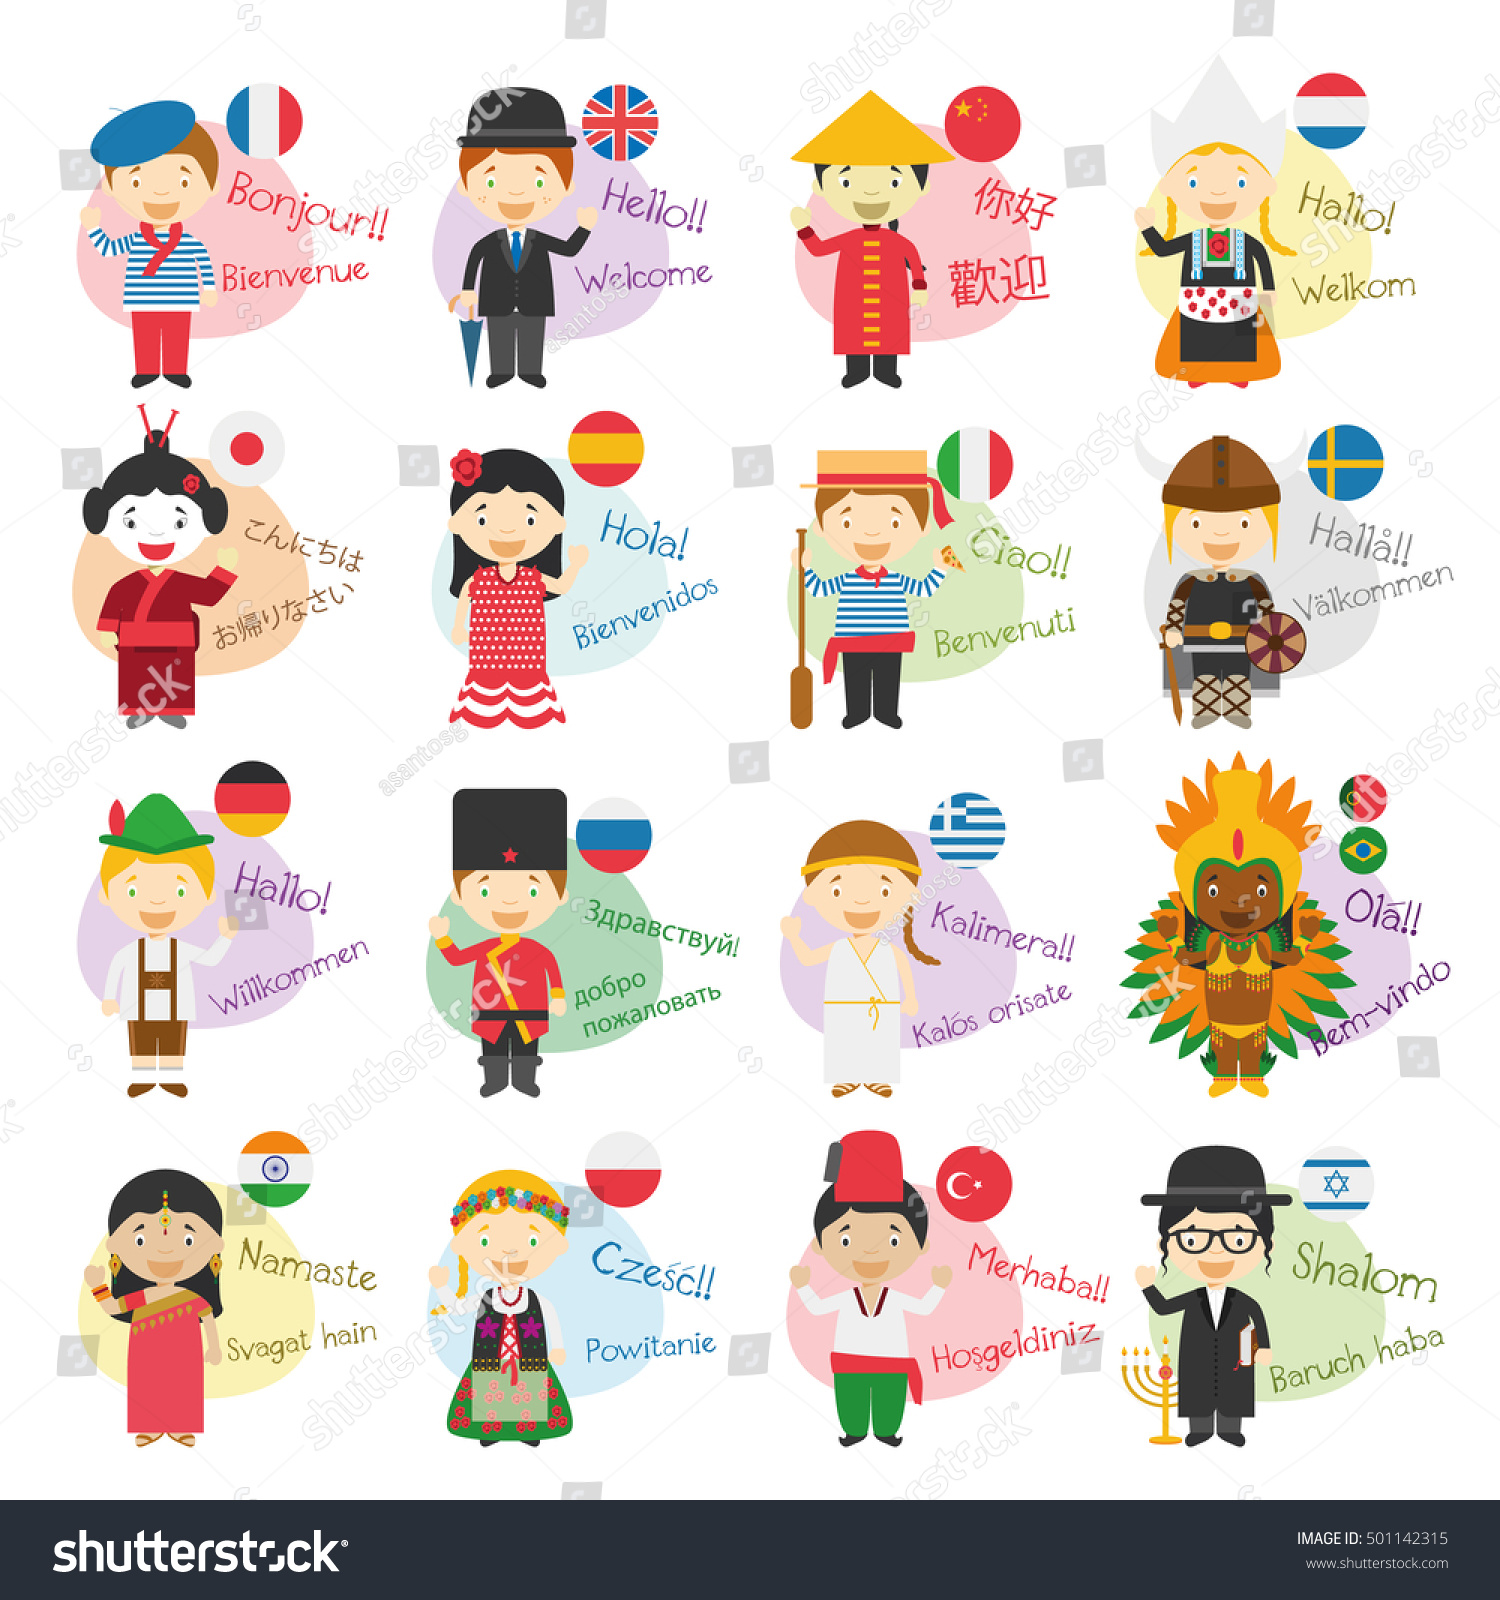 vector illustration cartoon characters saying hello stock vector vector illustration of cartoon characters saying hello and welcome in 16 different languages english